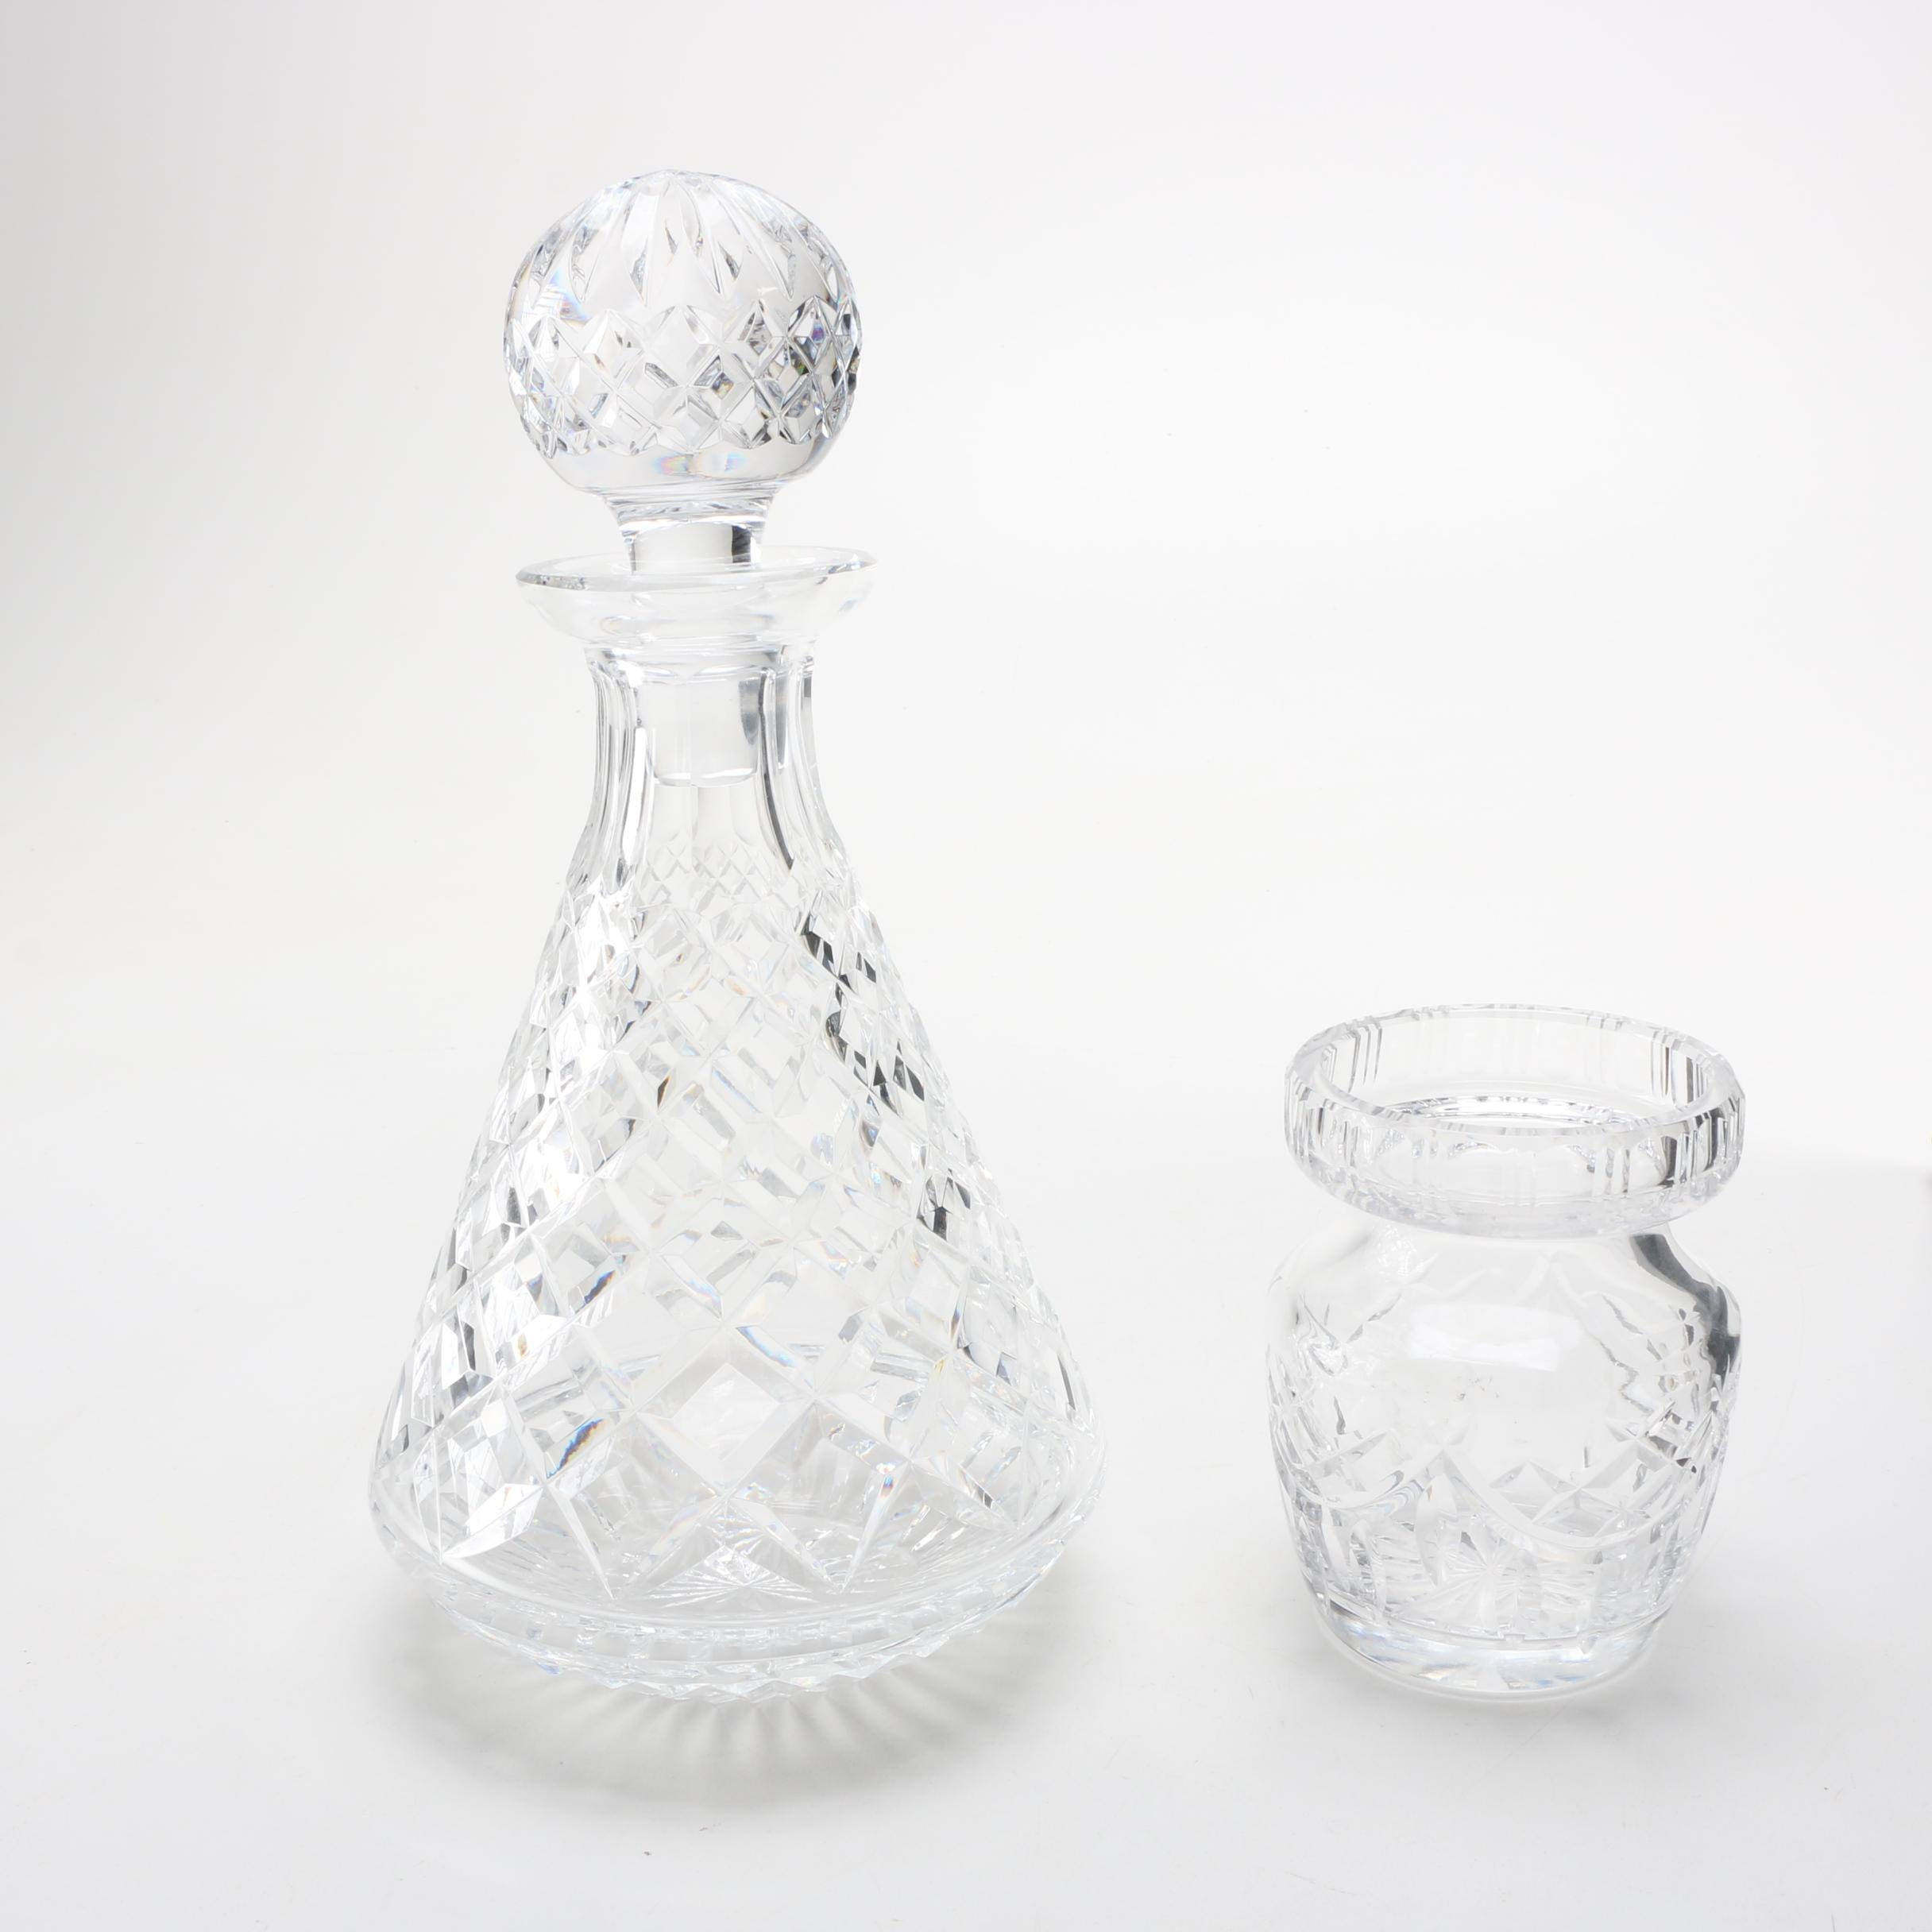 Waterford Crystal Jar and Crystal Decanter